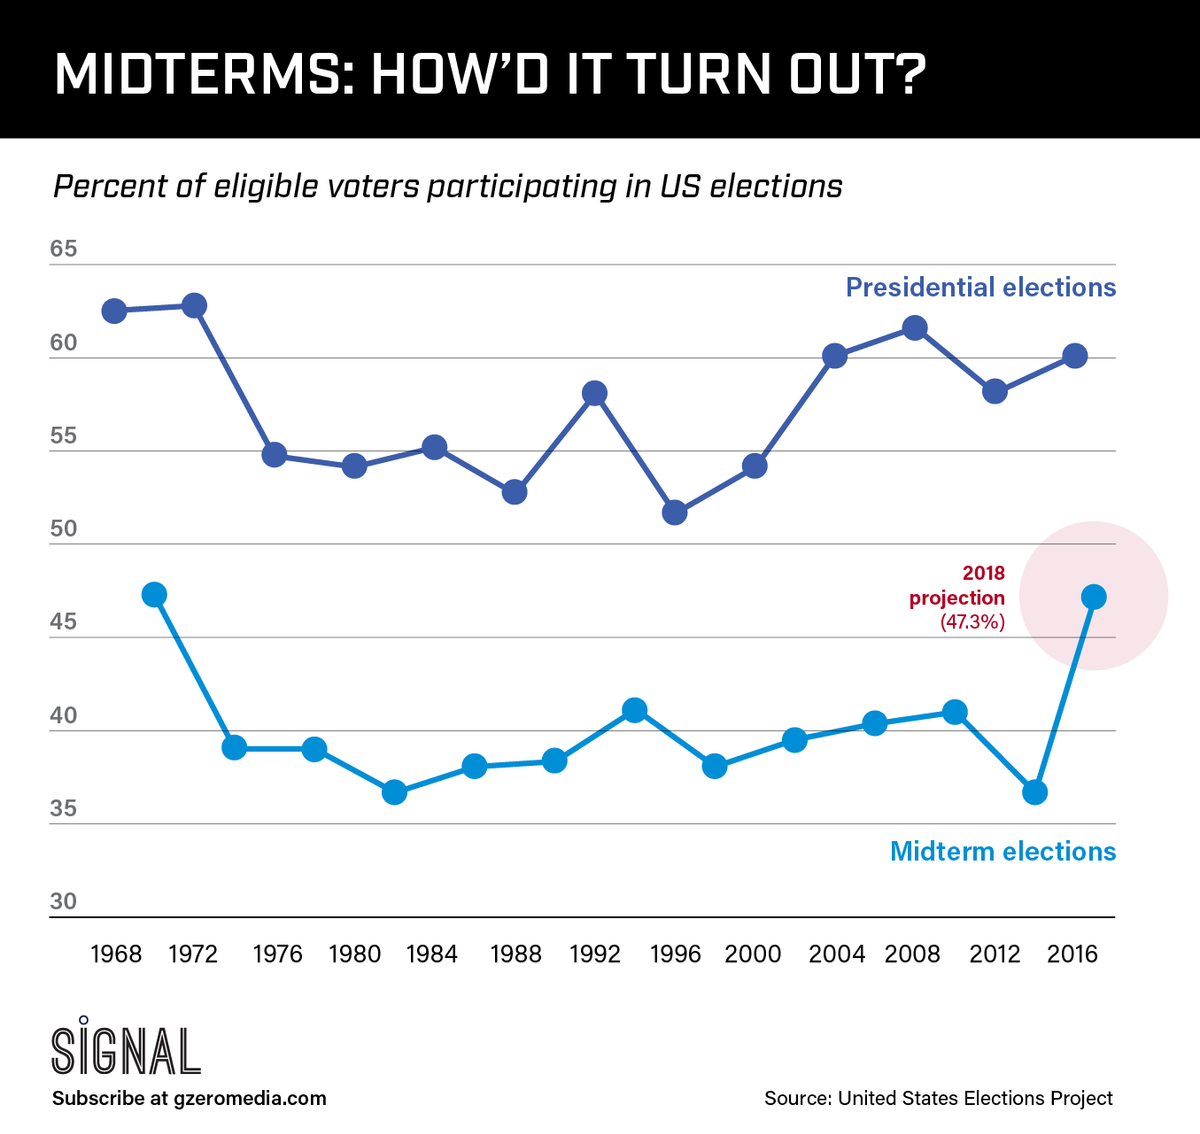 GRAPHIC TRUTH: MIDTERMS – HOW'D IT TURN OUT?